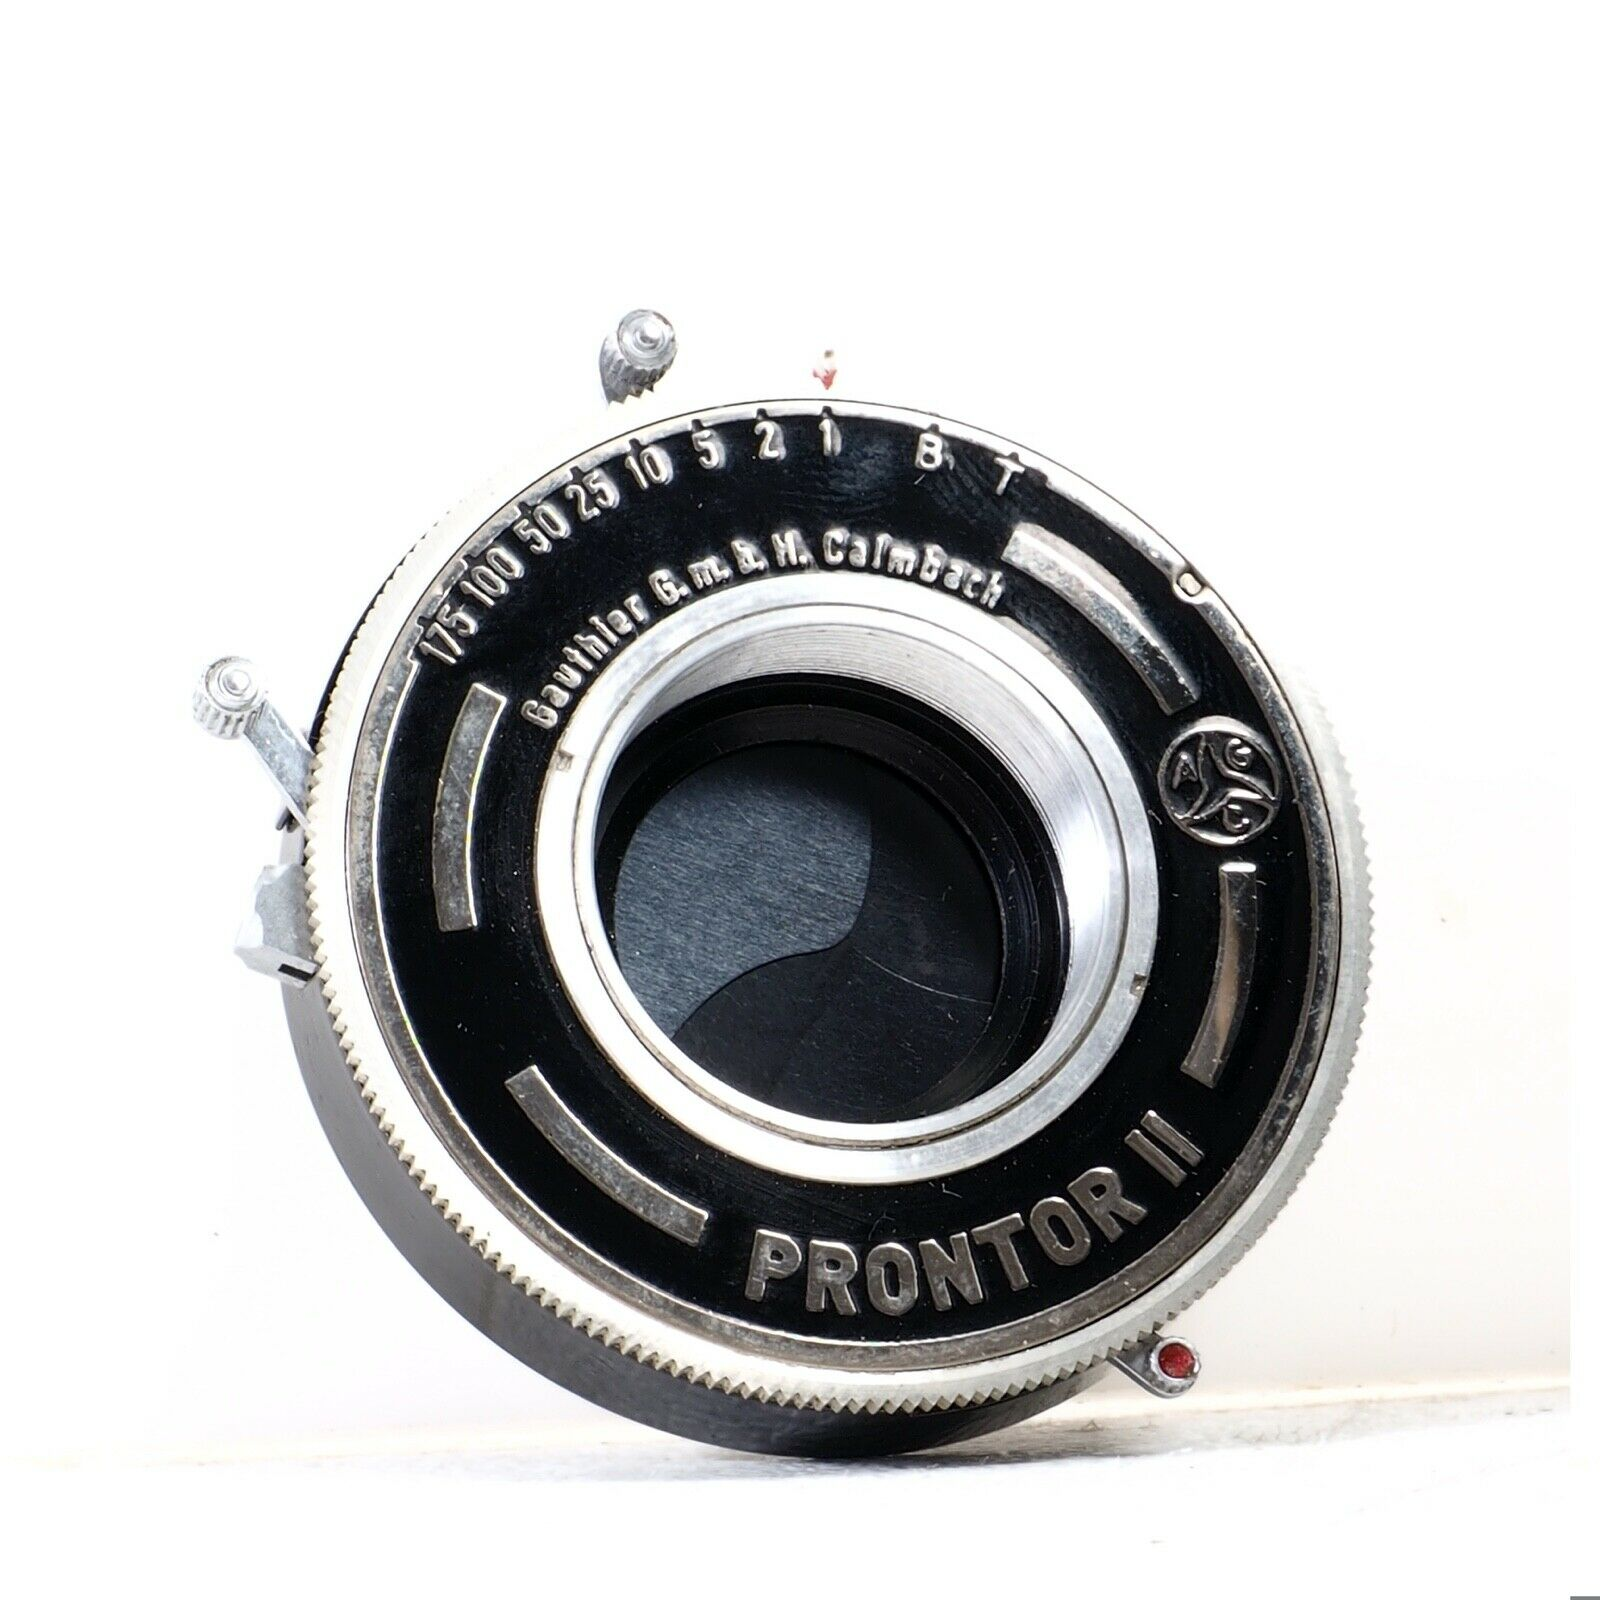 ^ New Old Stock Prontor II Lens Shutter [Would fit a Wirgin Edinex No Issue]